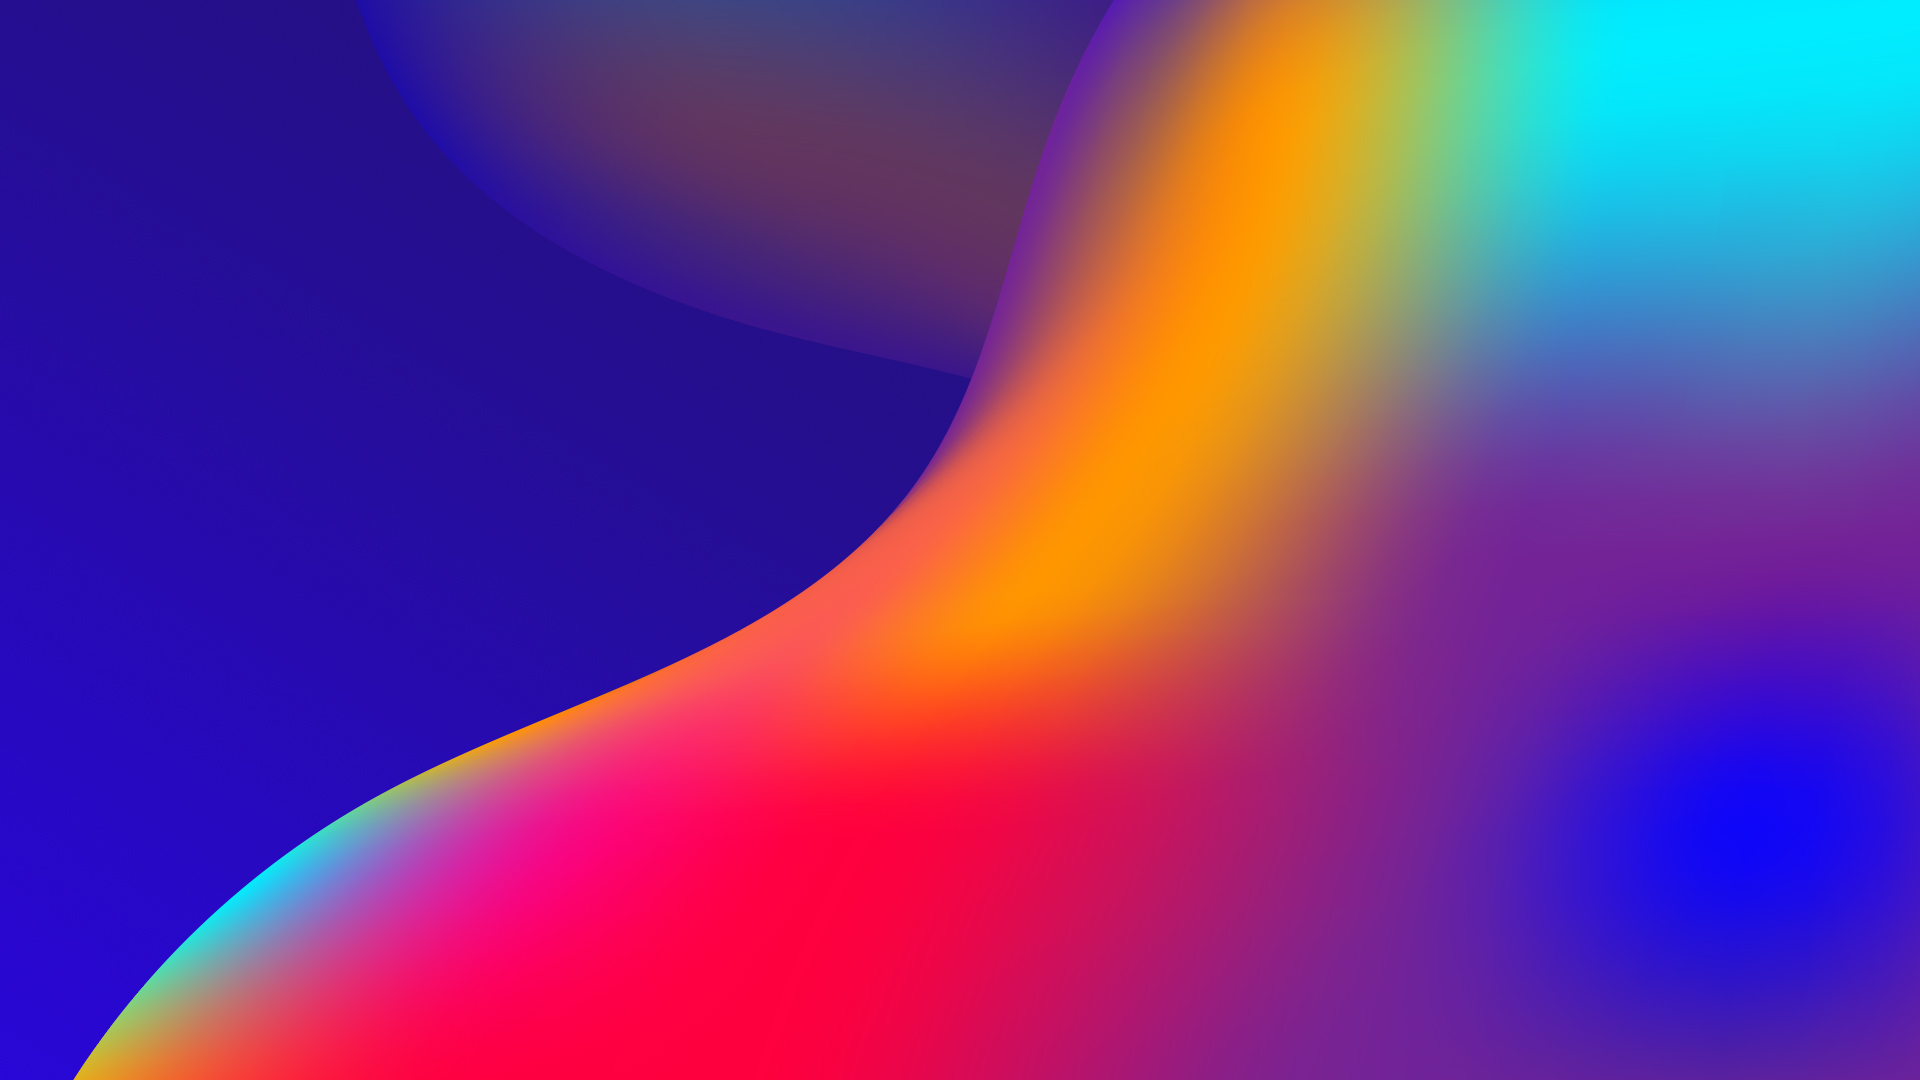 Neon Gradient Fondos de pantalla | HD Wallpapers